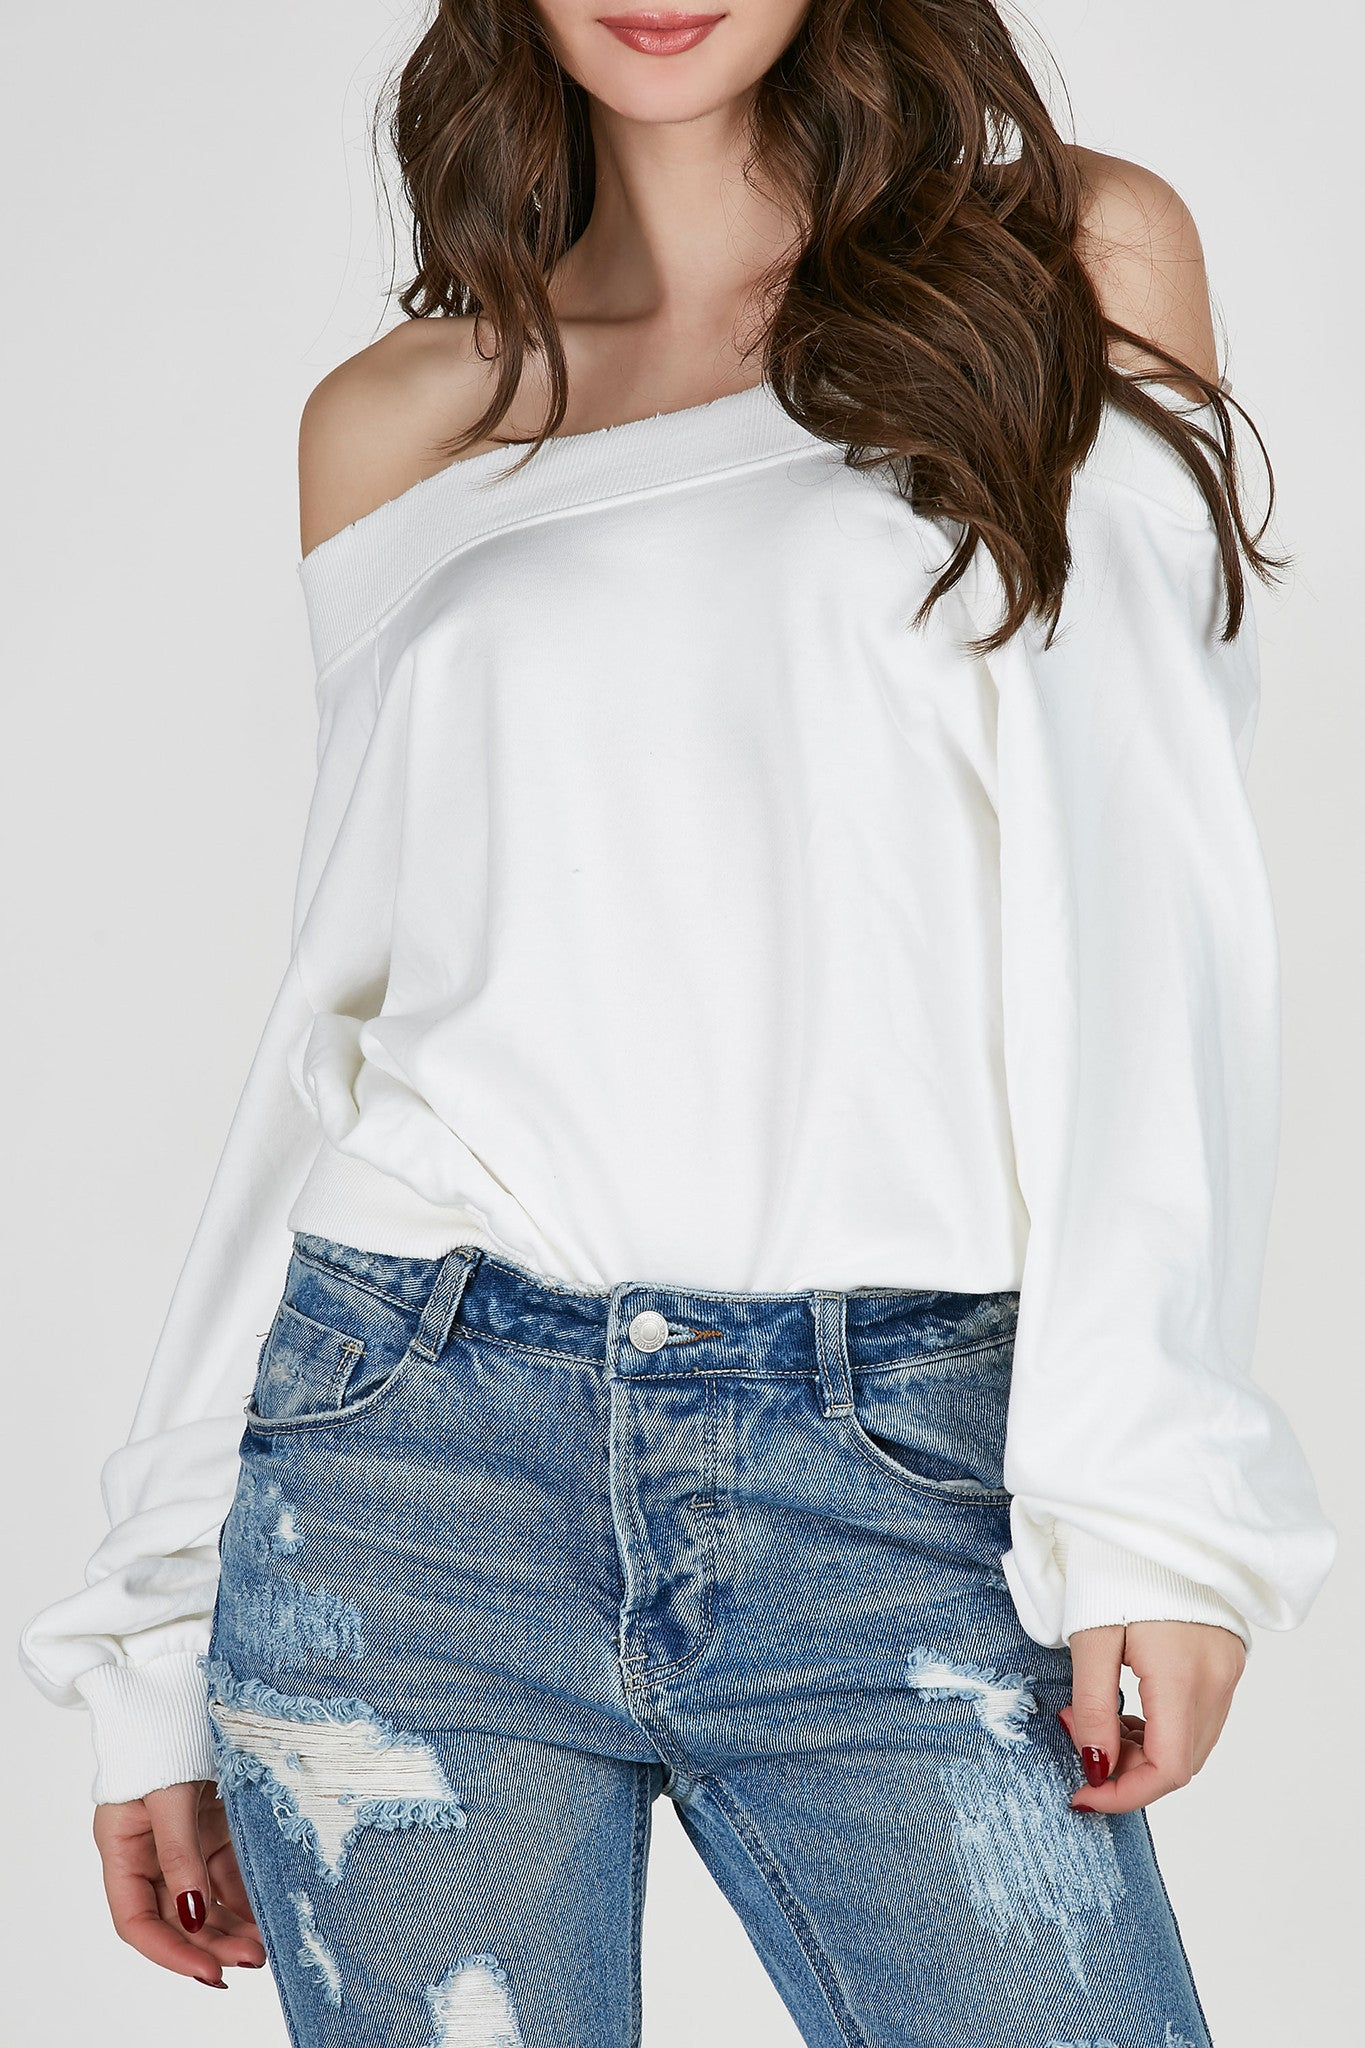 Ribbed off shoulder neckline with full length sleeves. Relaxed fit with subtle distressing at hem.